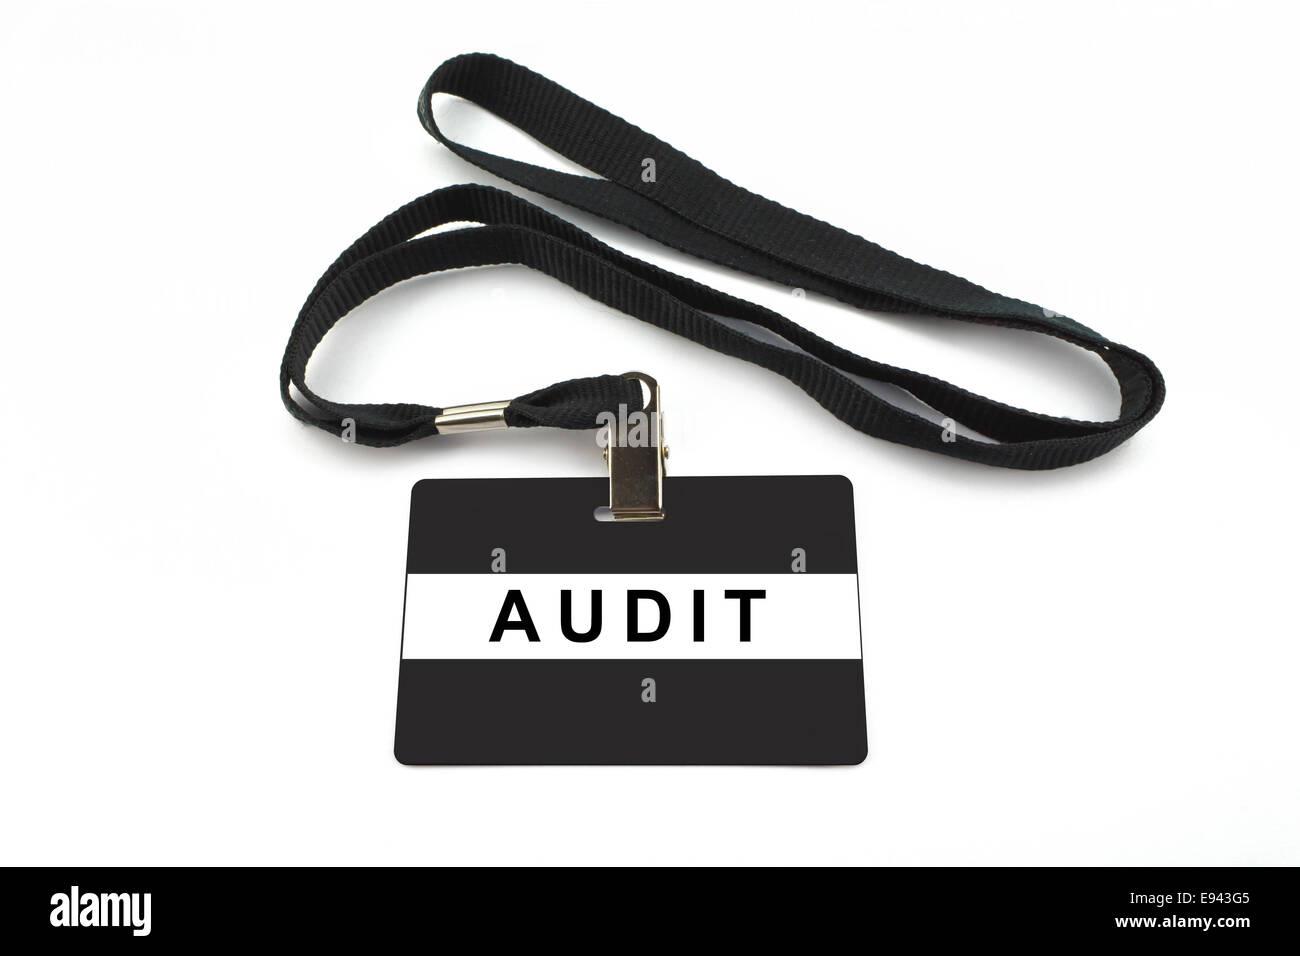 audit badge with strip isolated on white background - Stock Image